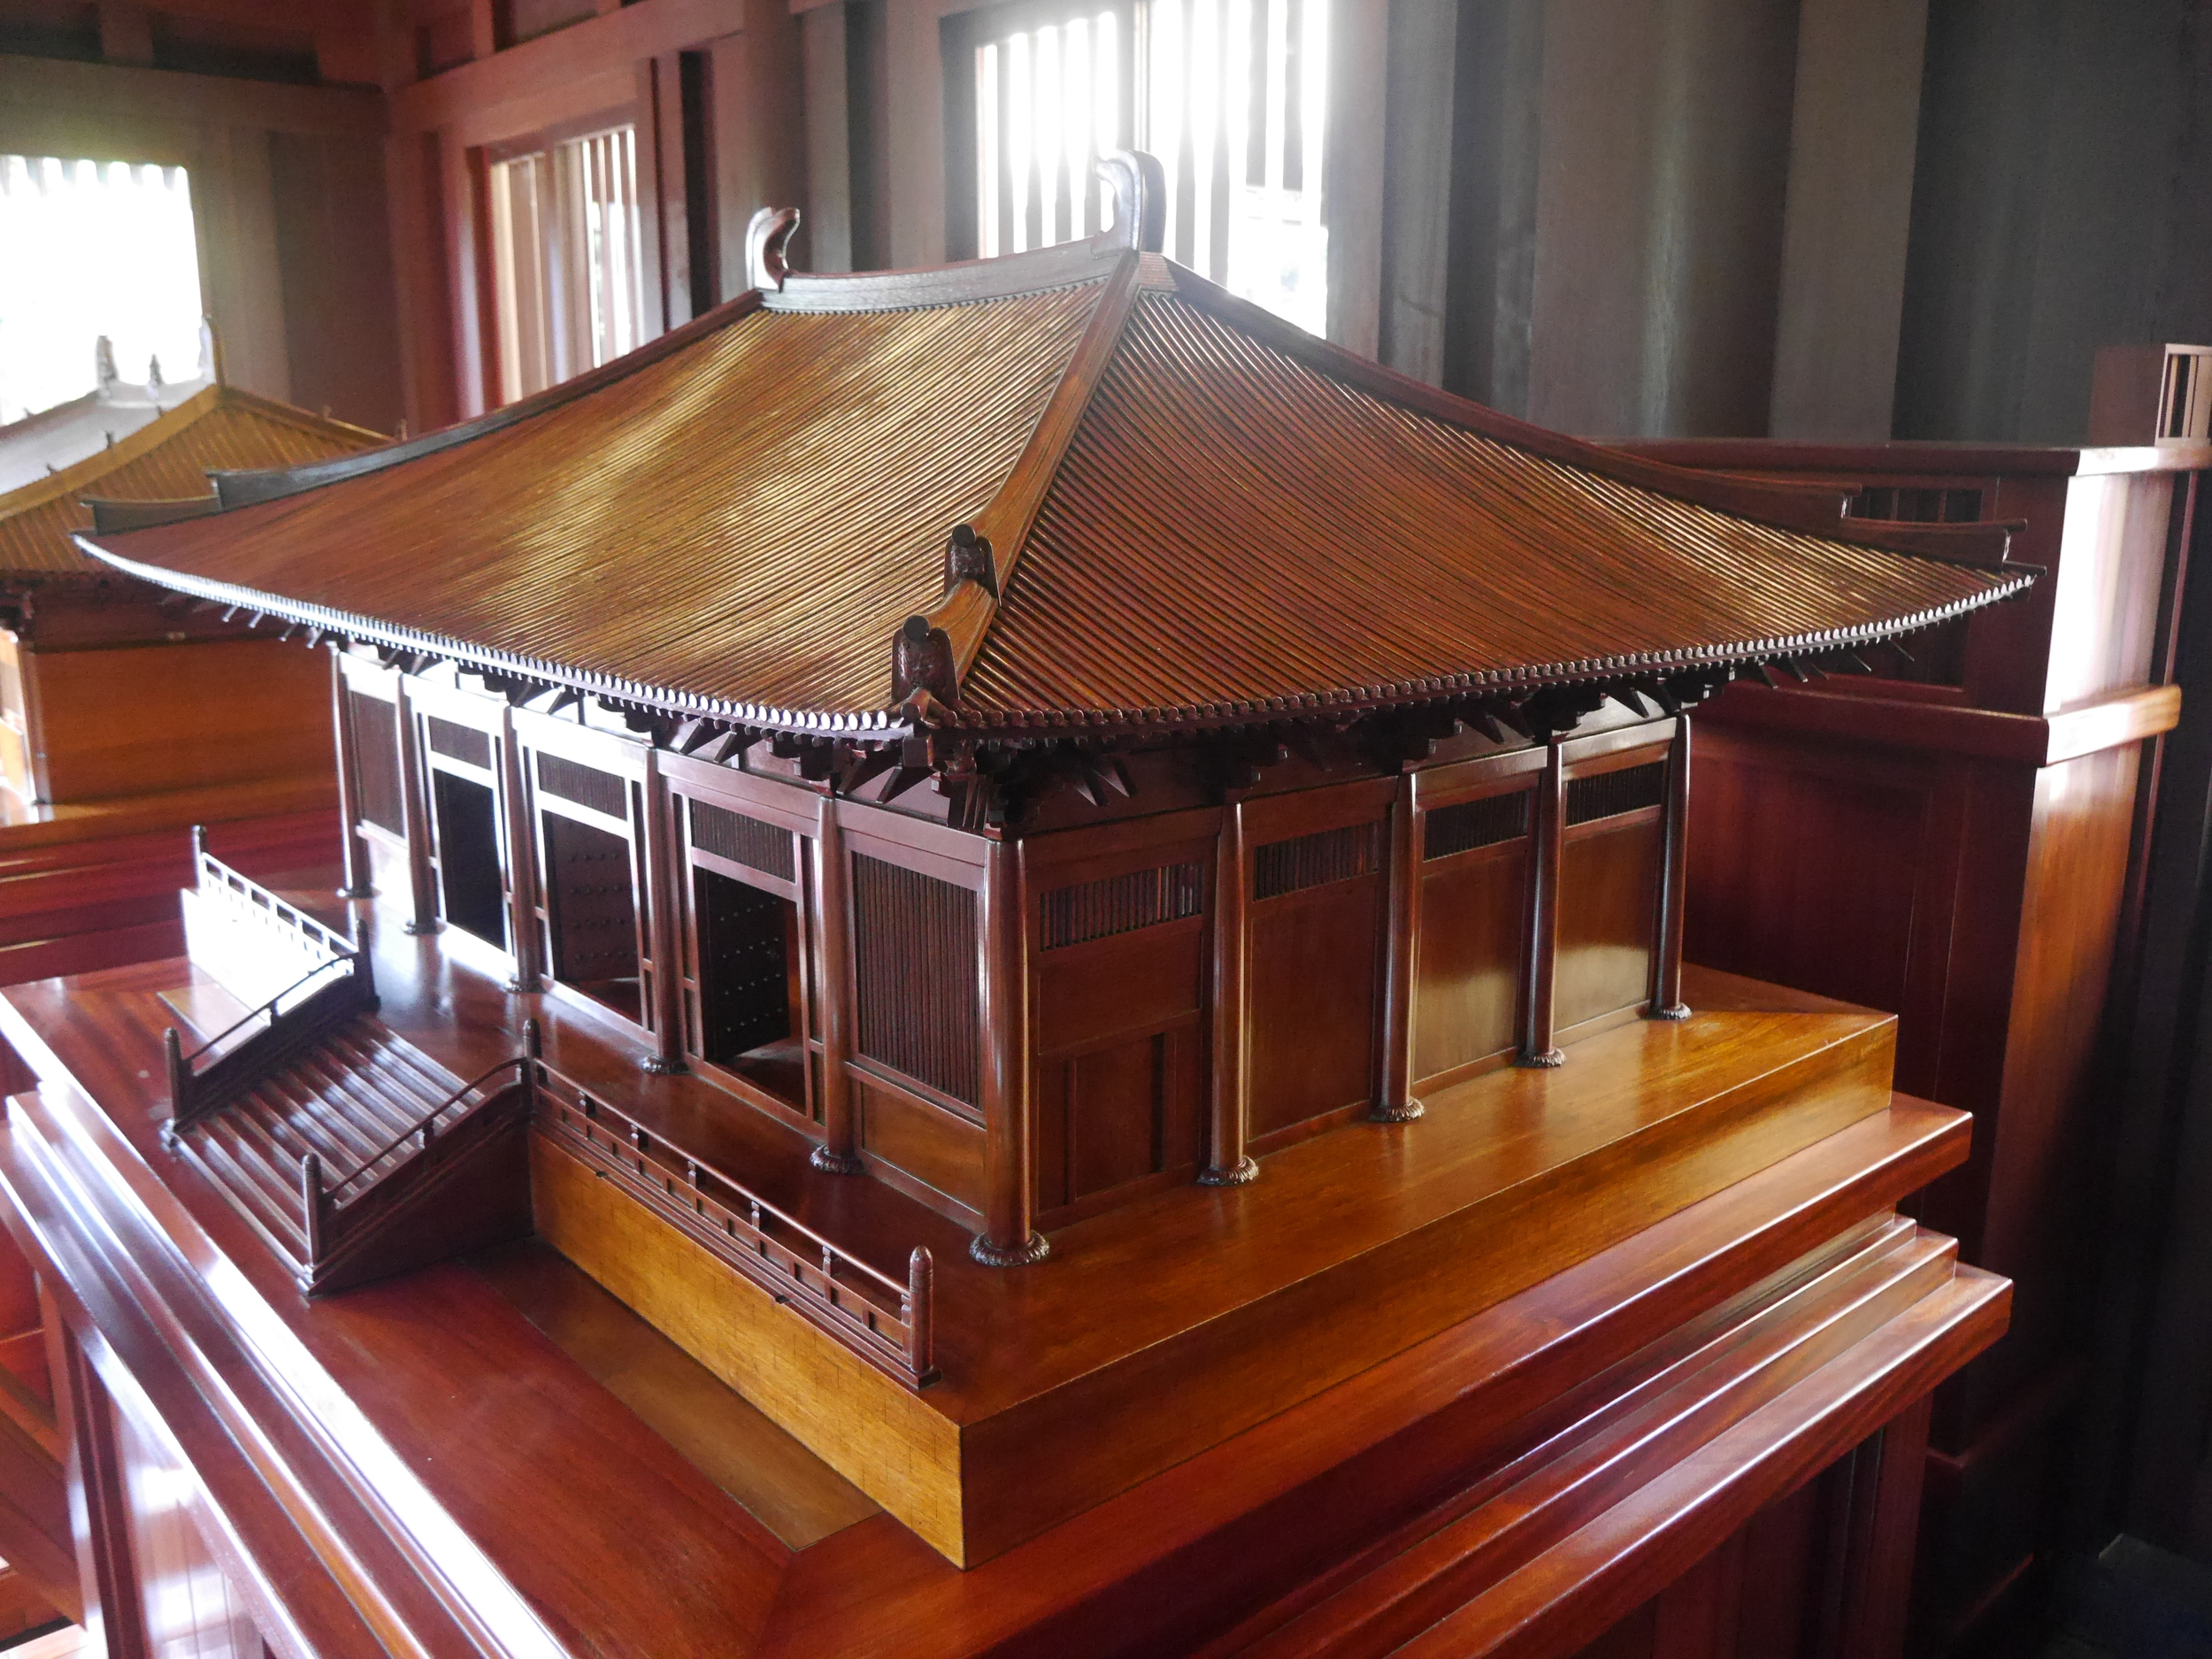 Inside the garden was a building housing a display of miniature versions of famous examples of Chinese architecture.